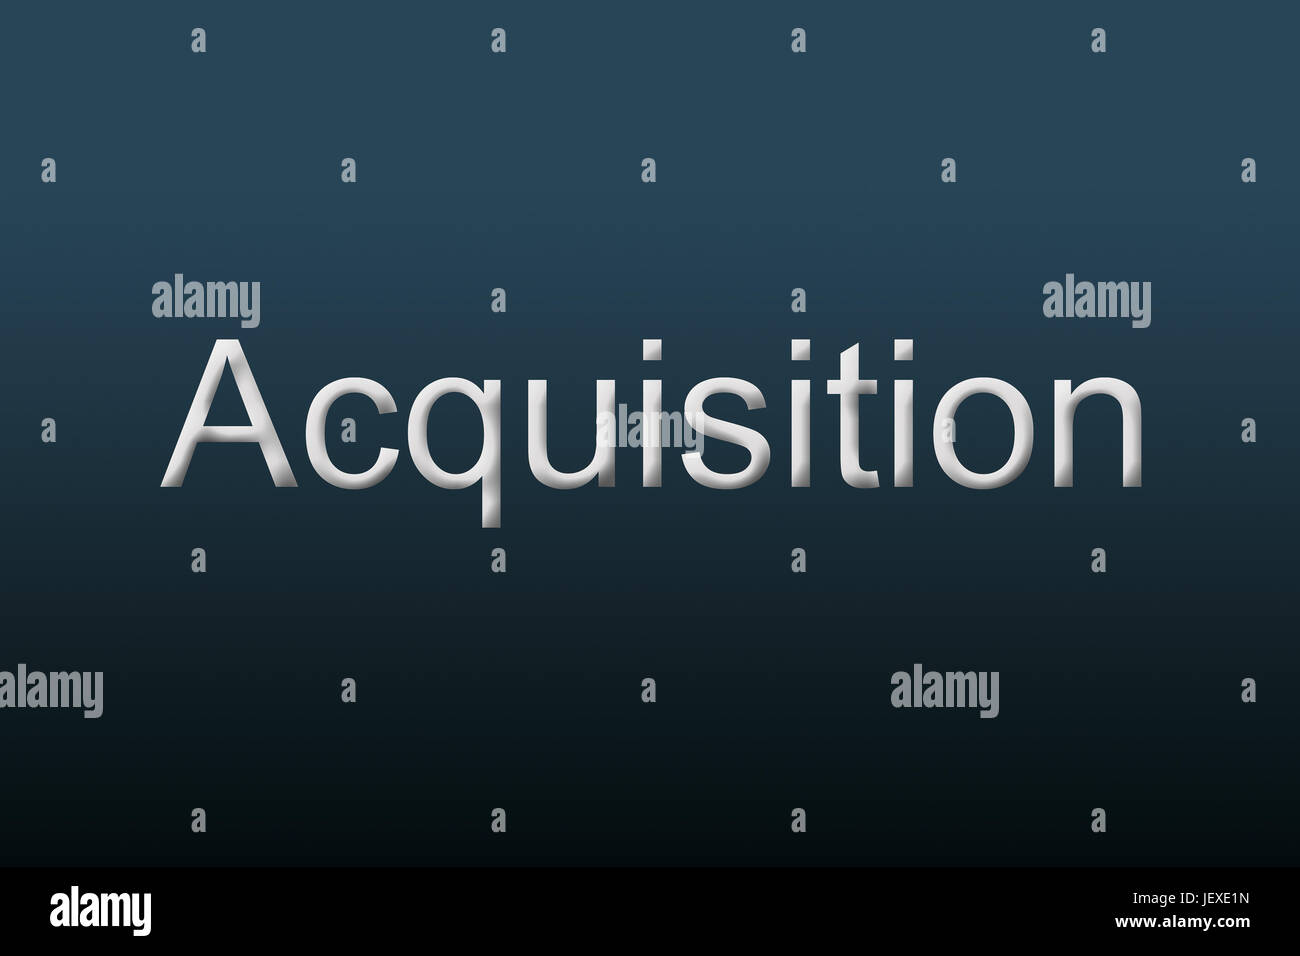 Acquisition Concept - Stock Image